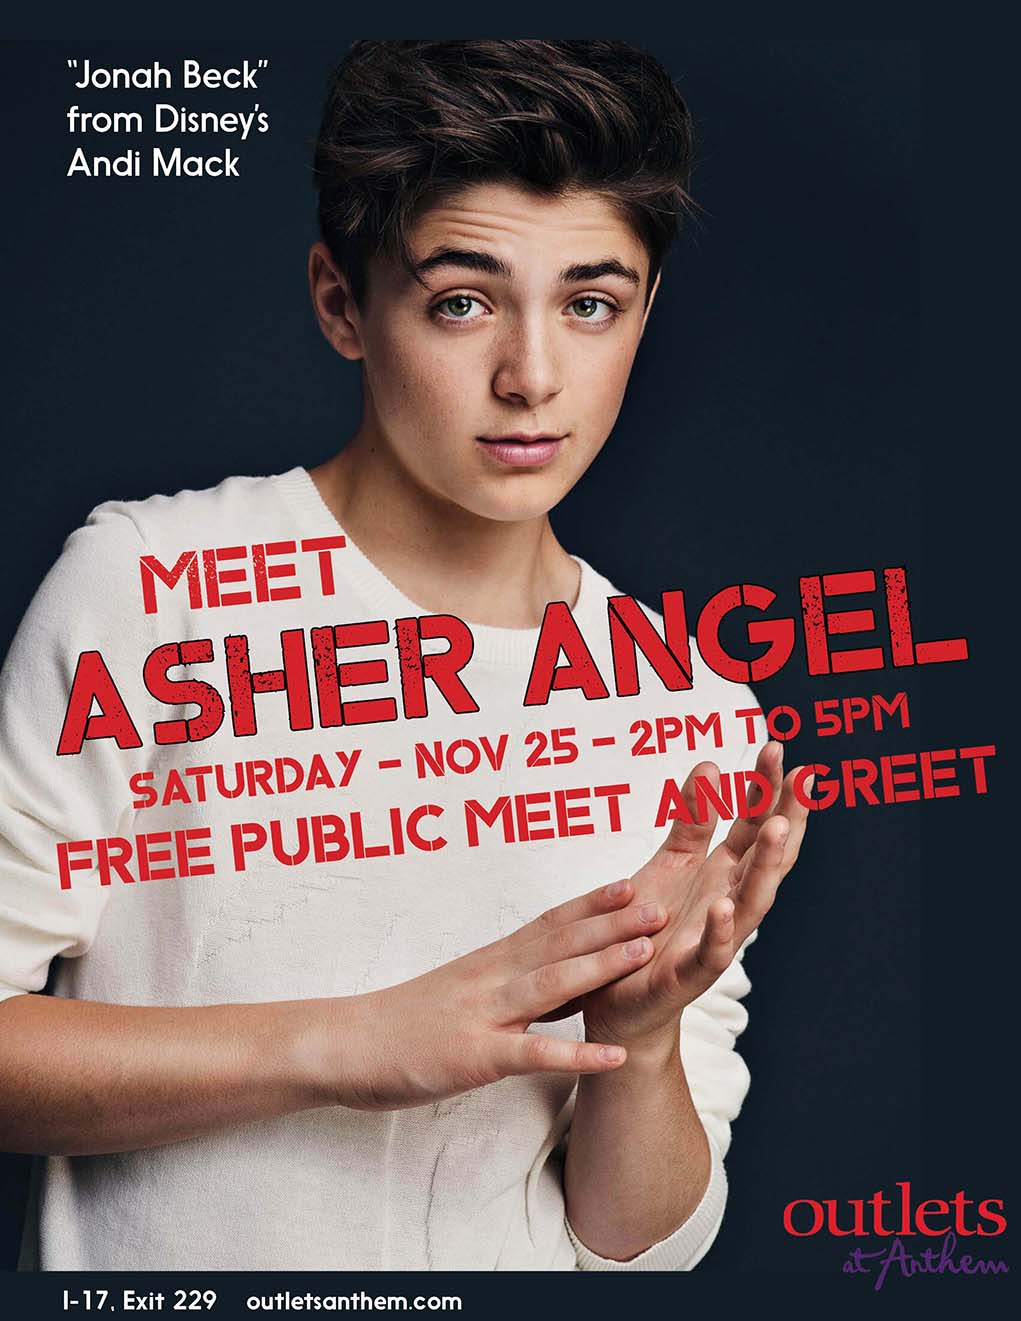 Disney star appearing at outlets at anthem sonoran news free public meet and greet what disney channel star m4hsunfo